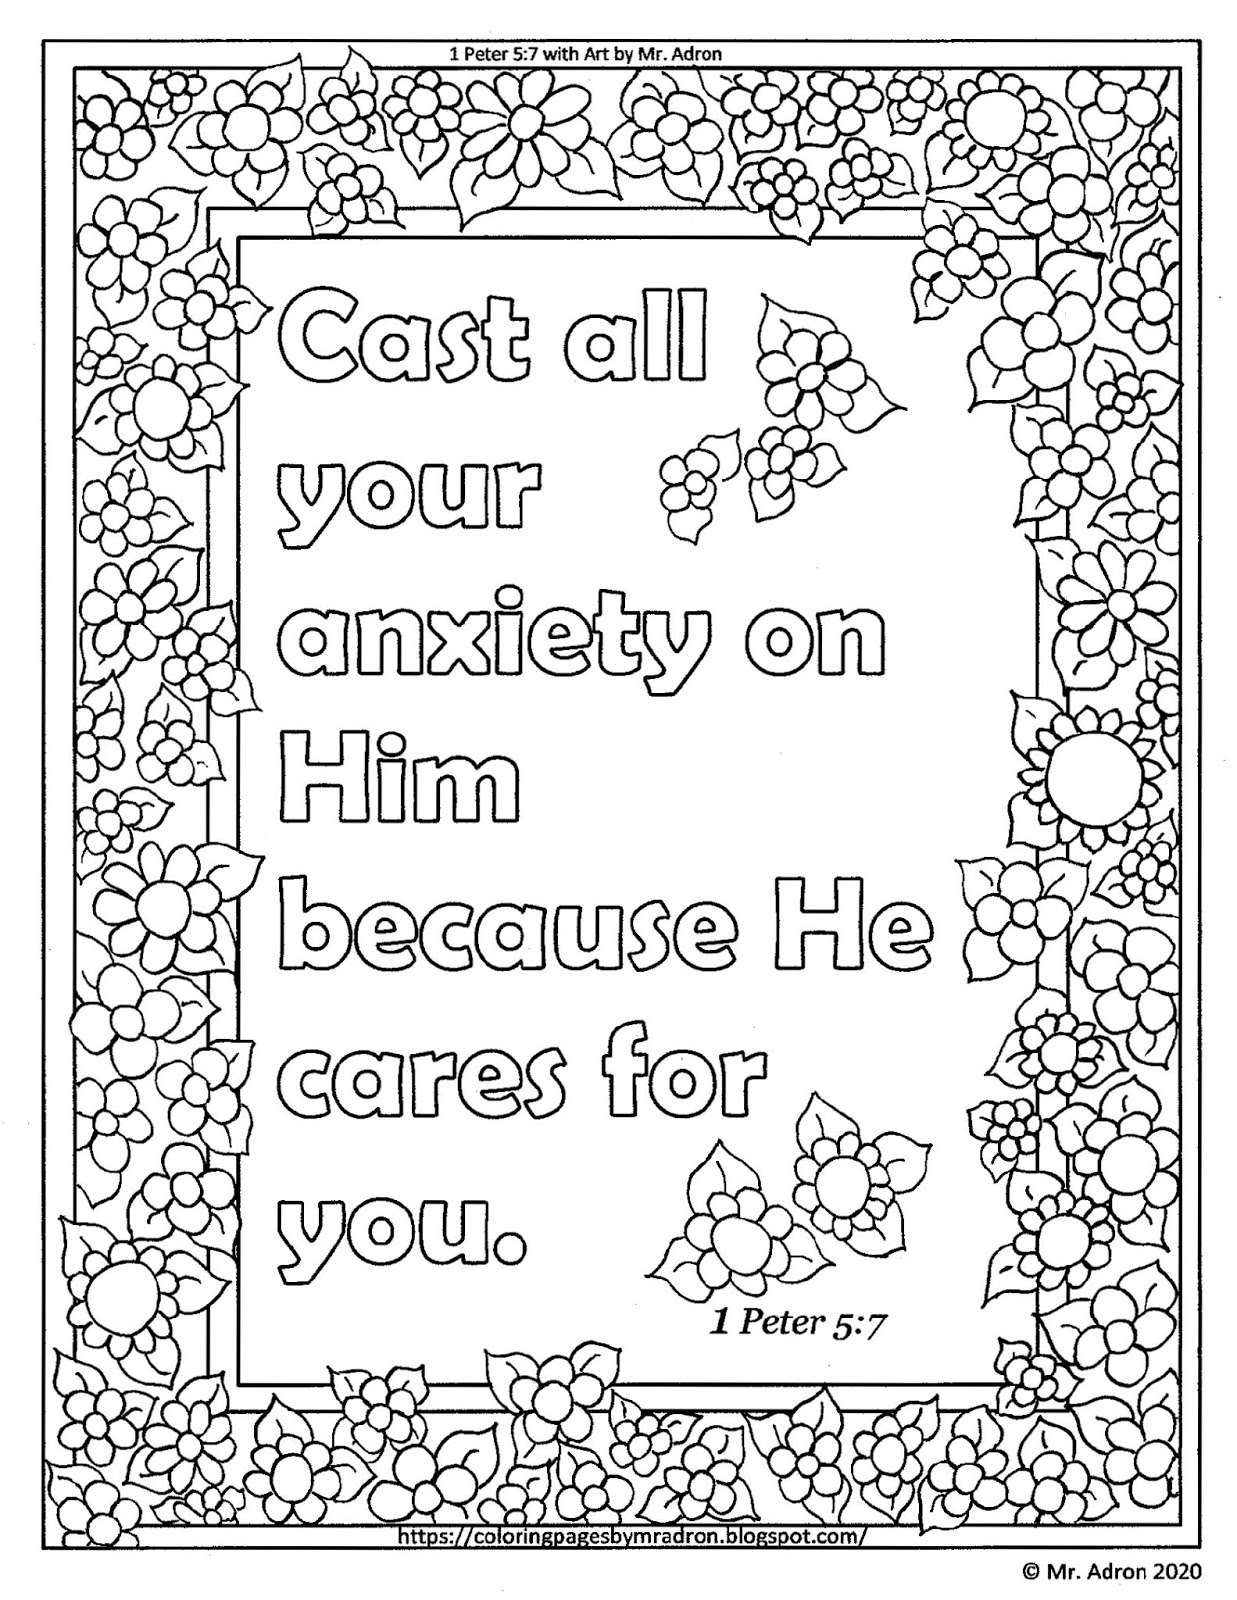 1 peter 5 7 coloring page coloring pages for kids by mr adron free 1 peter 57 7 coloring page peter 5 1